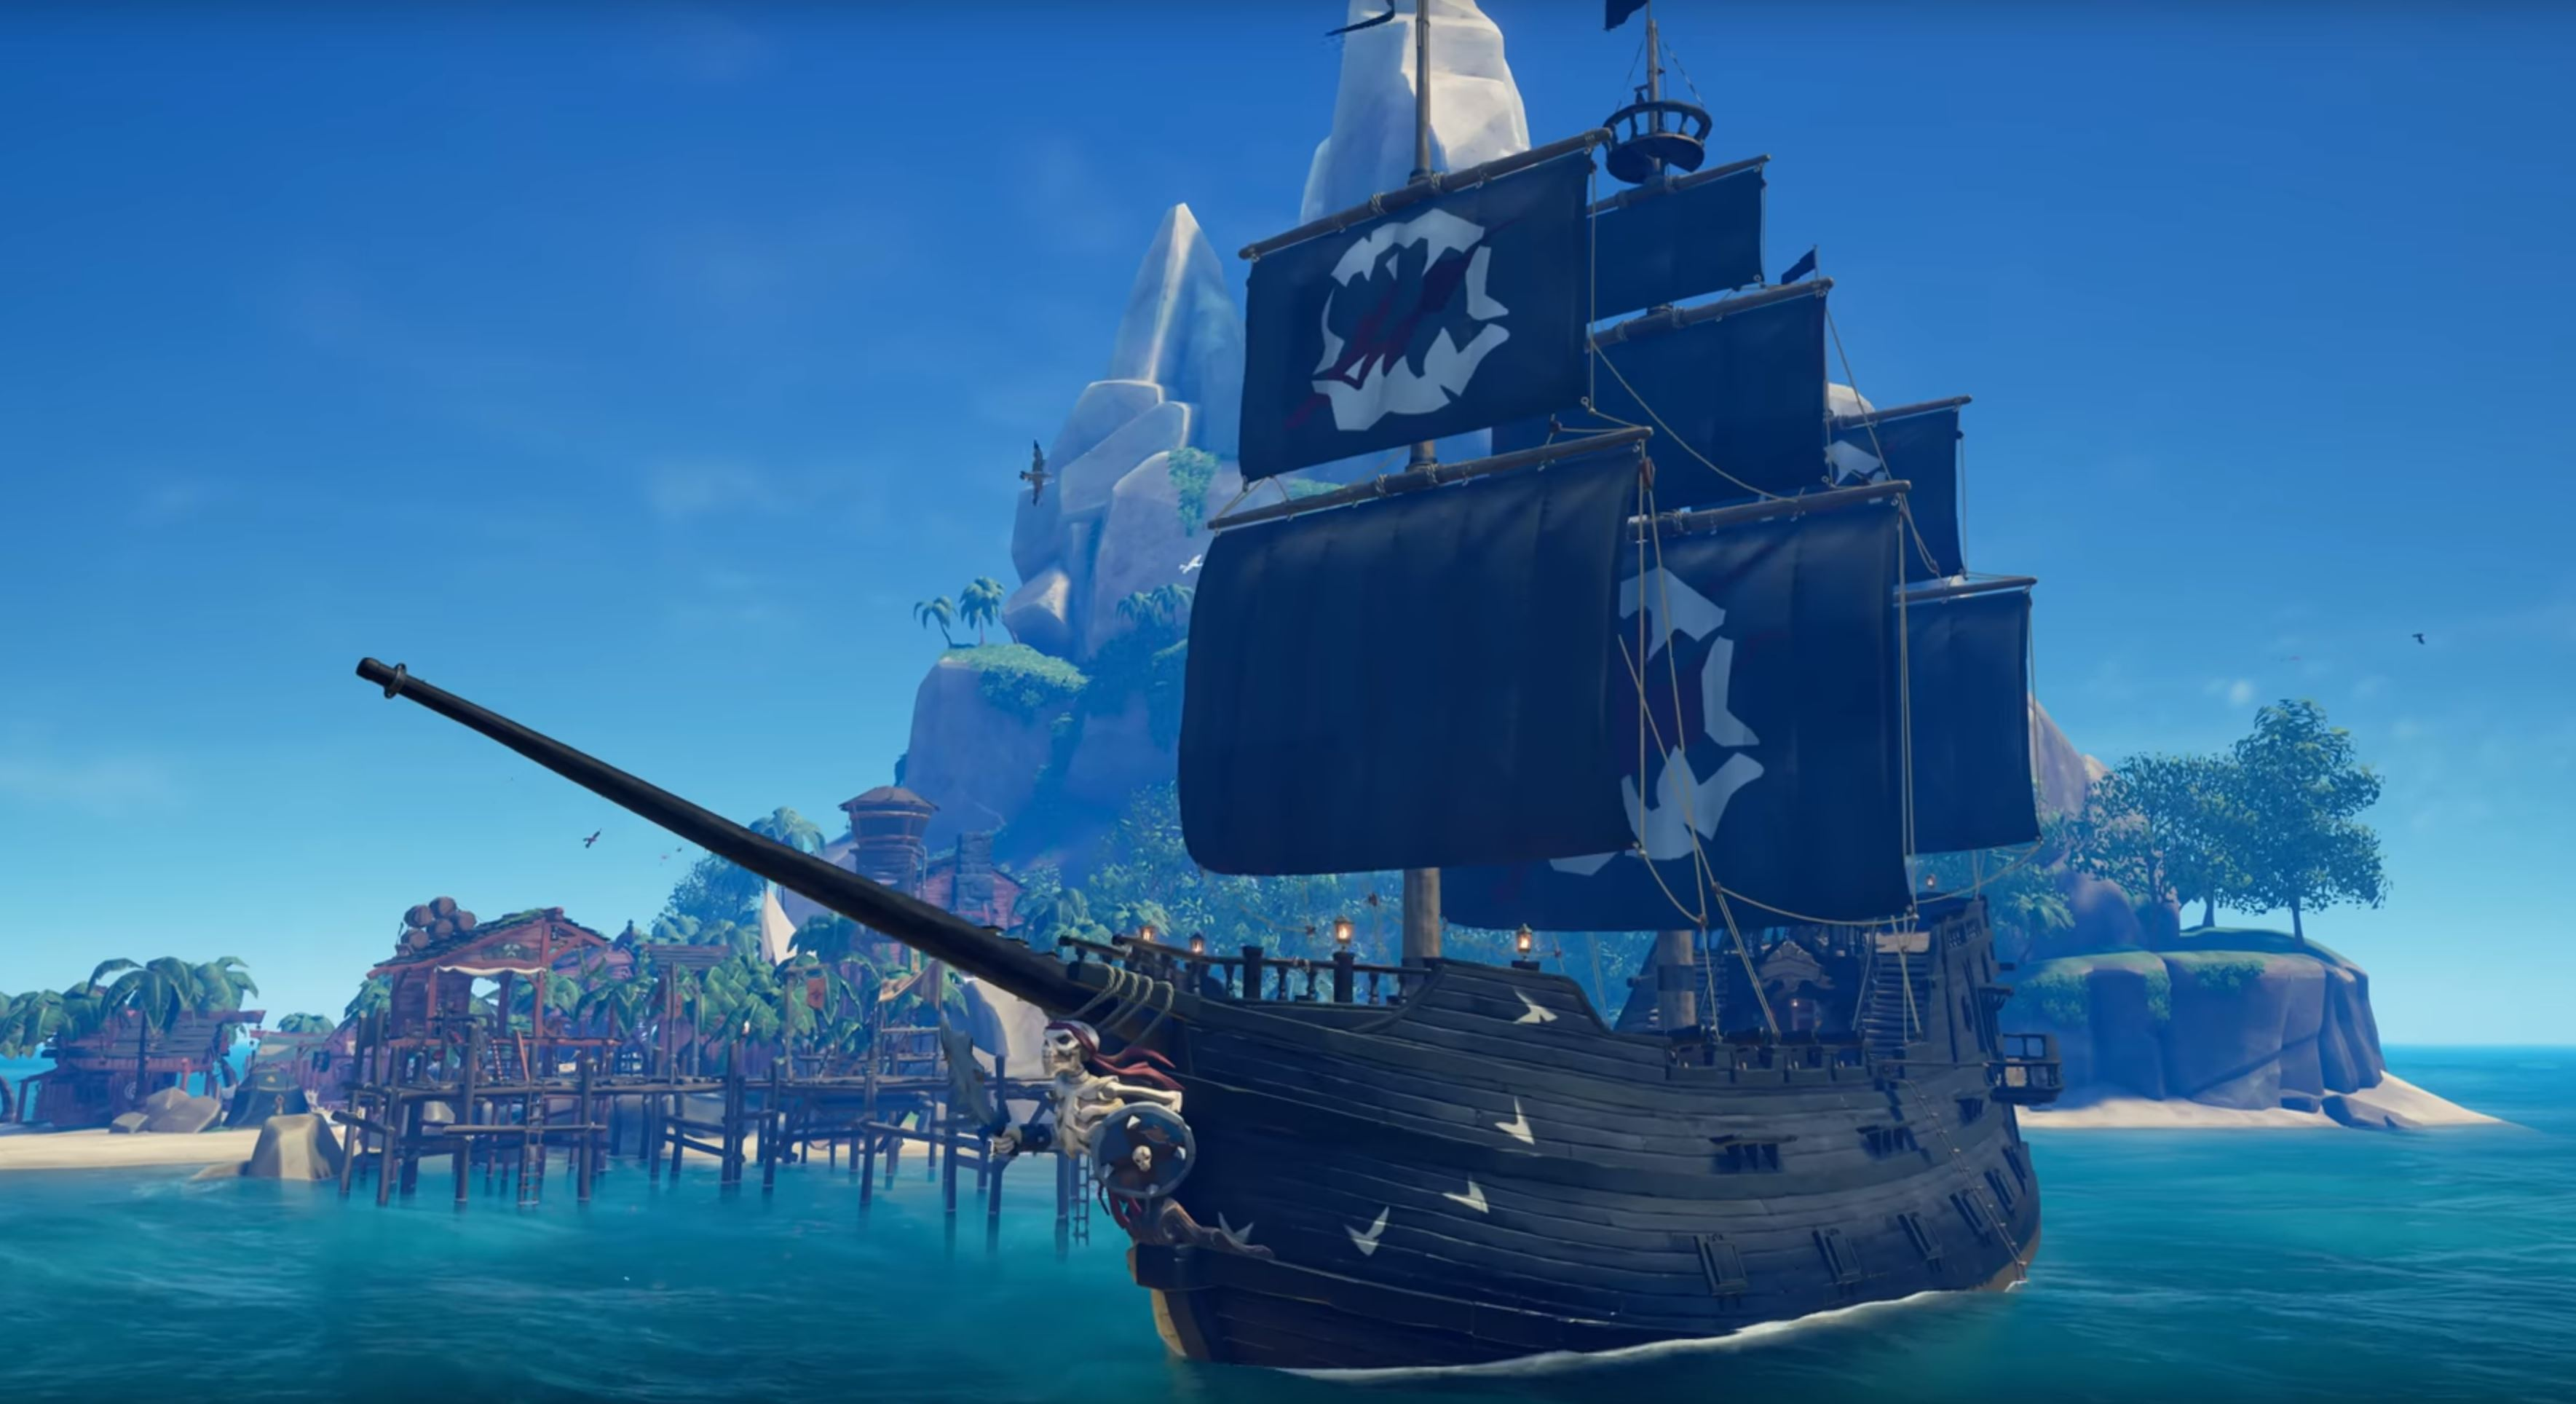 Get Sea Of Thieves Free With Purchase Of Xbox One X At